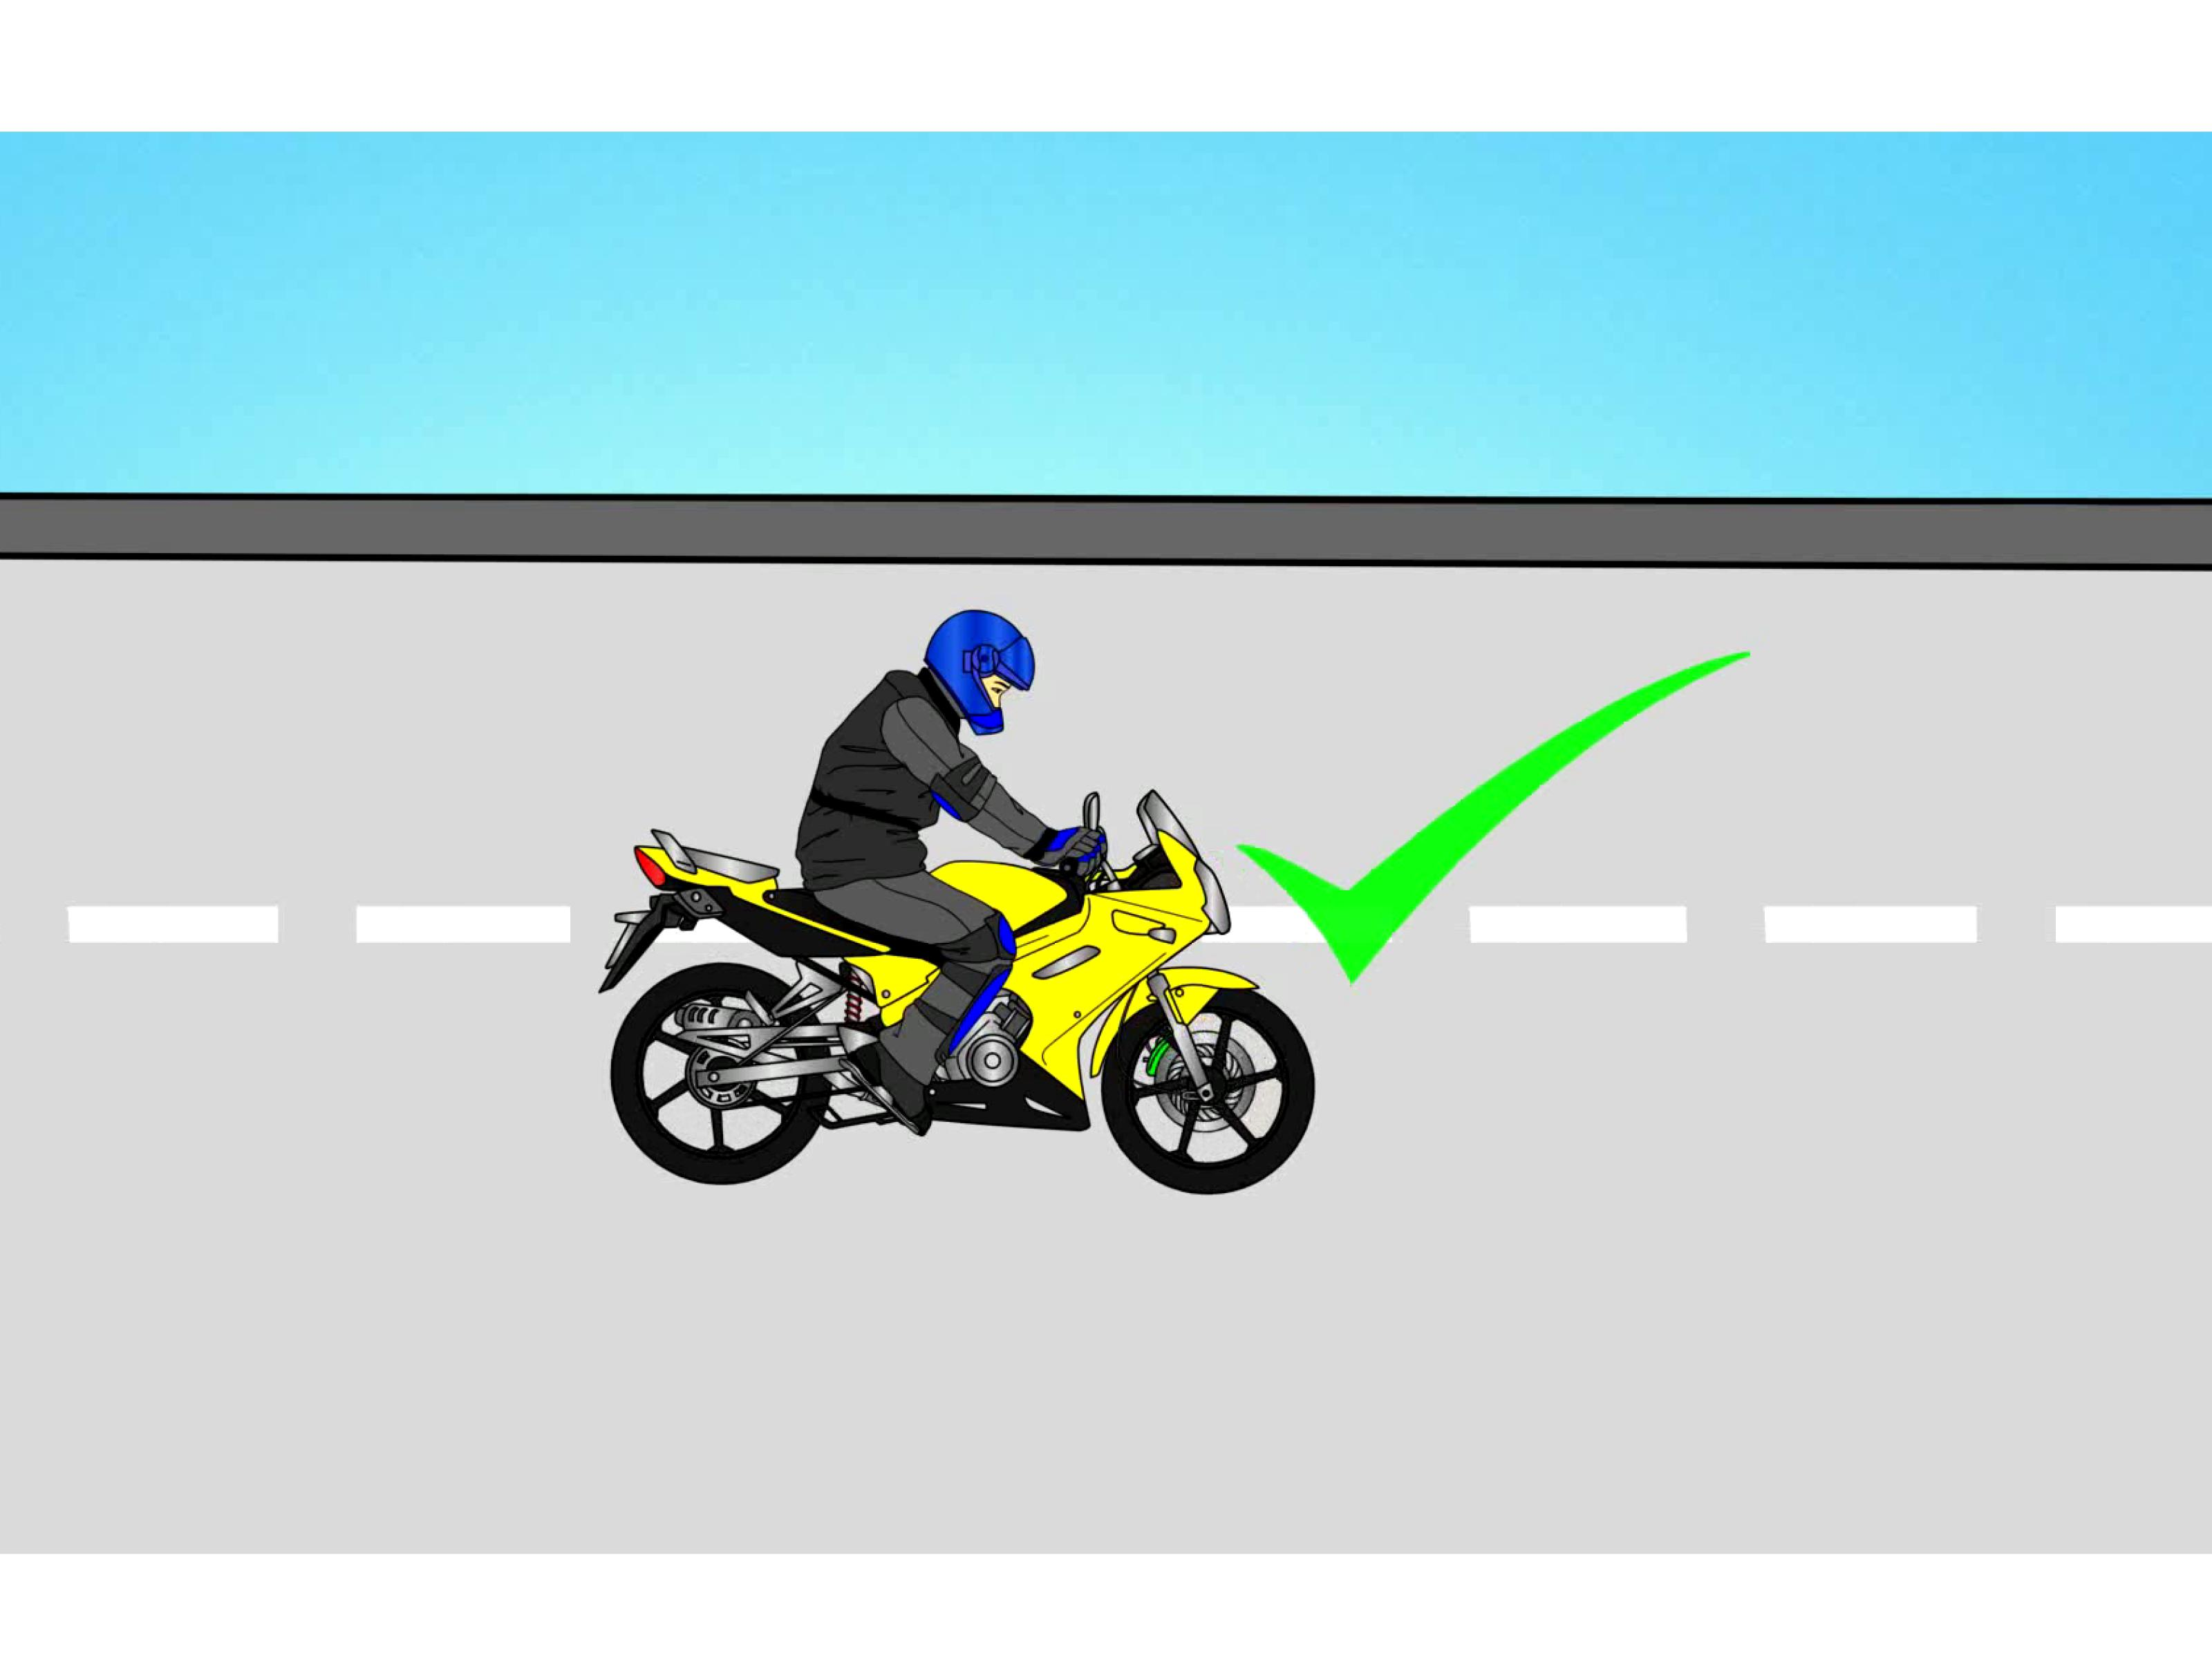 Learning Turn Motorcycle